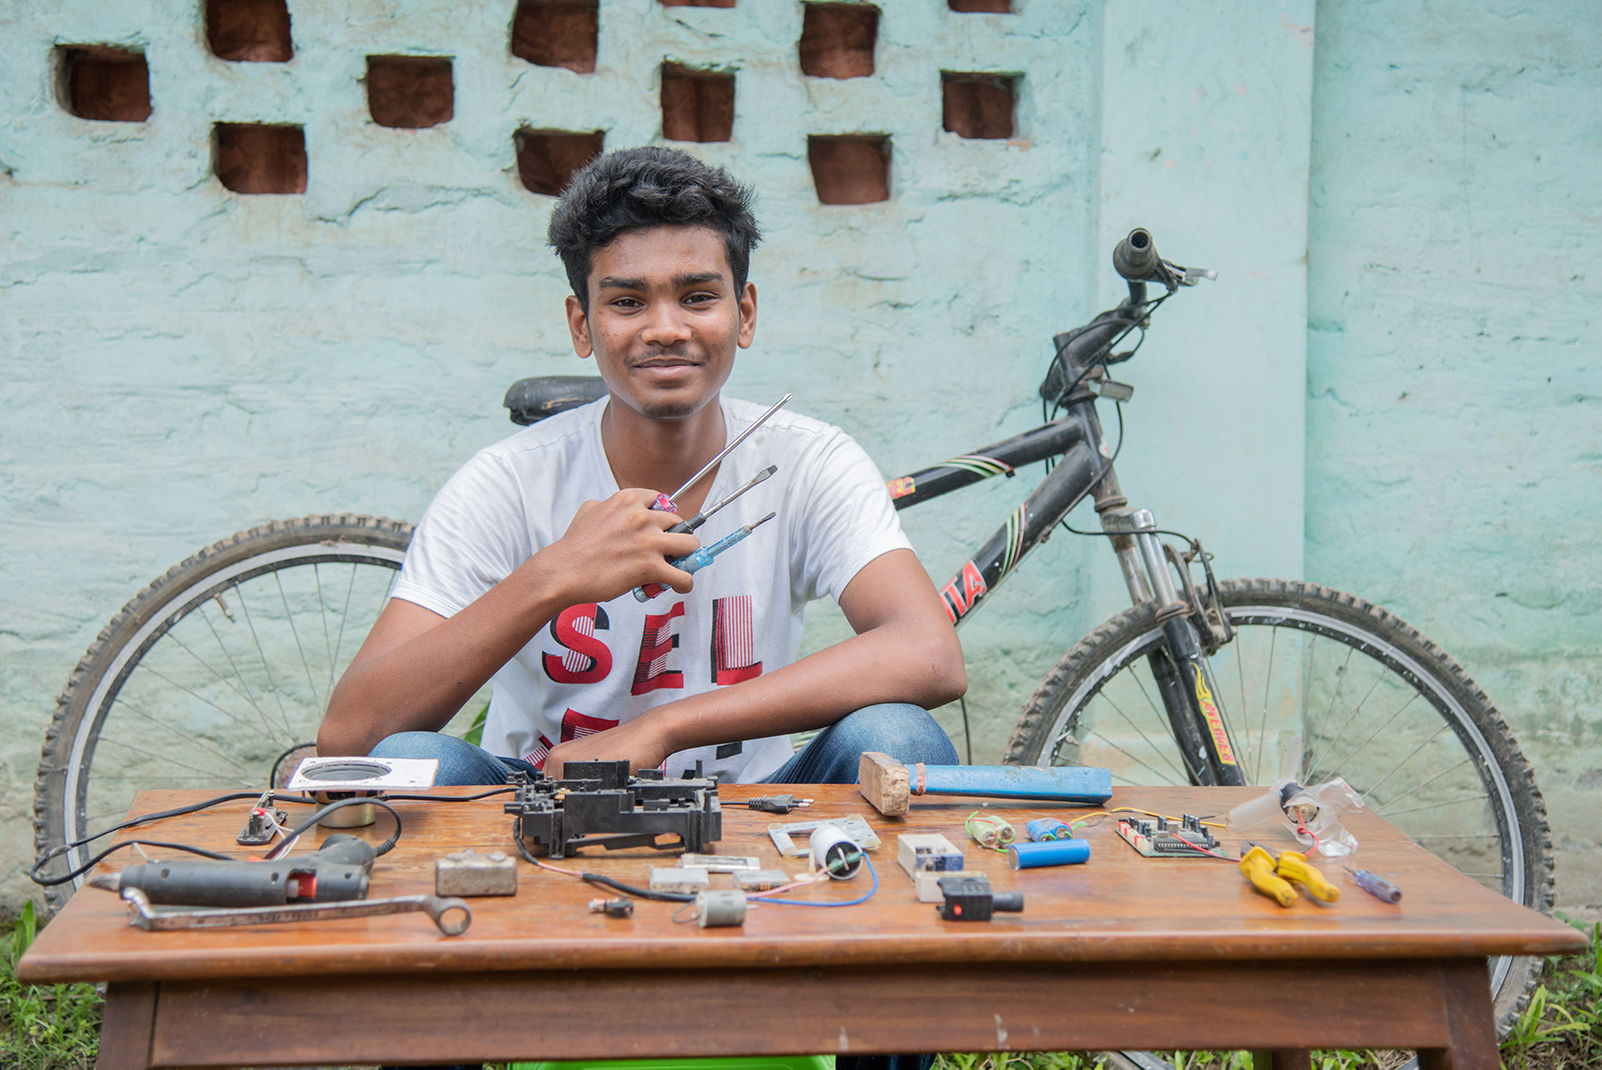 A young man sits at a table covered in tools